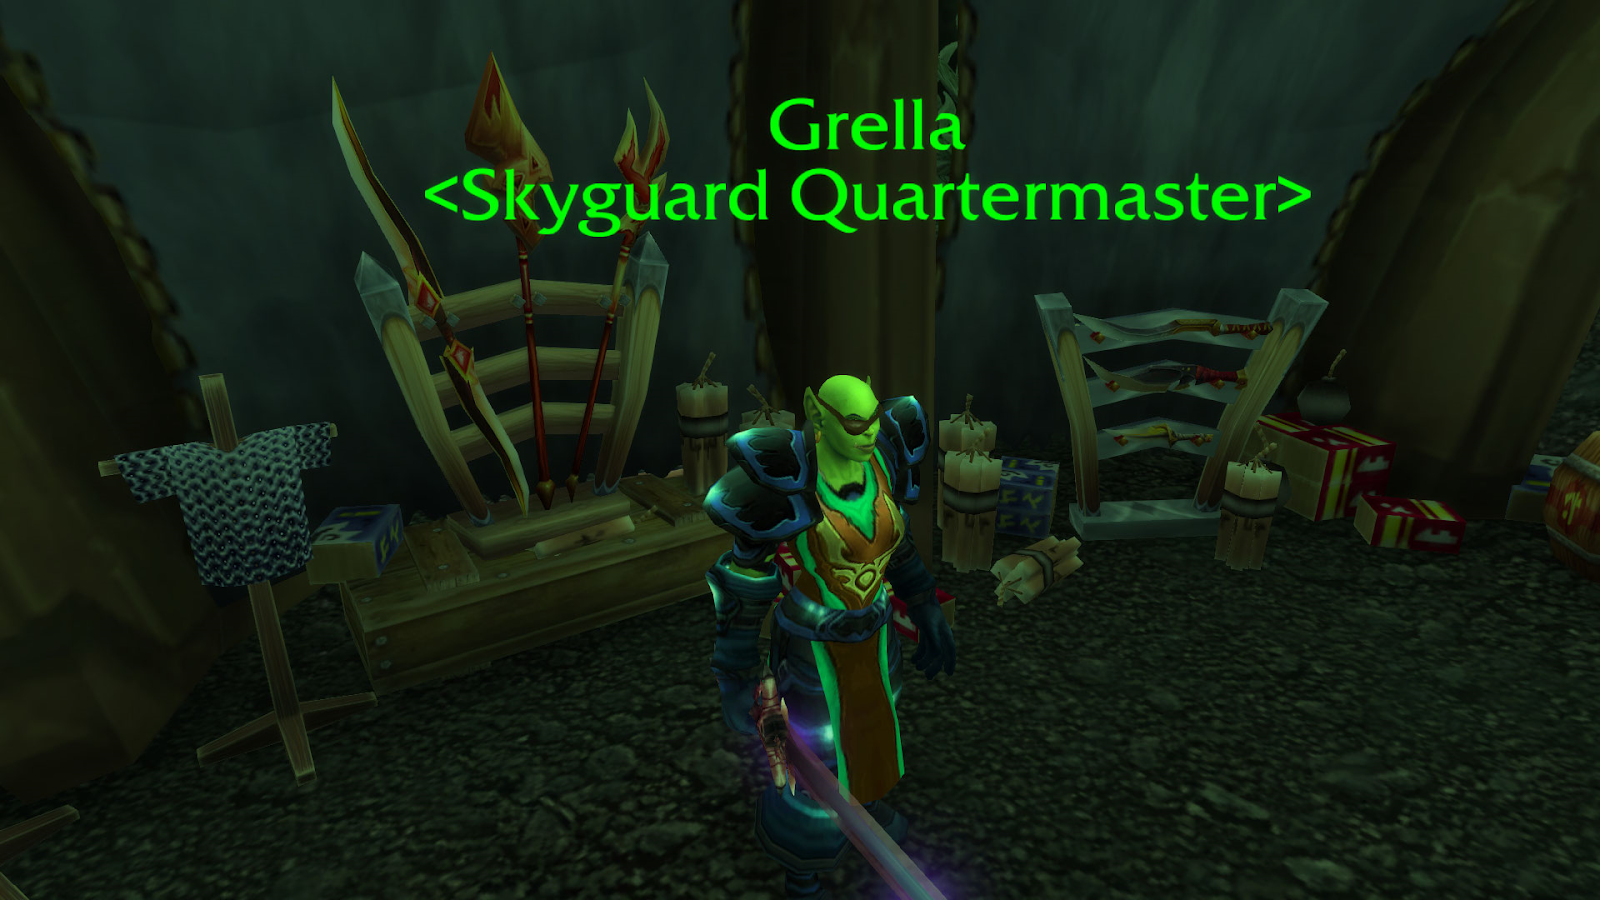 Grella is the Quartermaster that will sell the Blue Riding Nether Ray once you are Exalted.